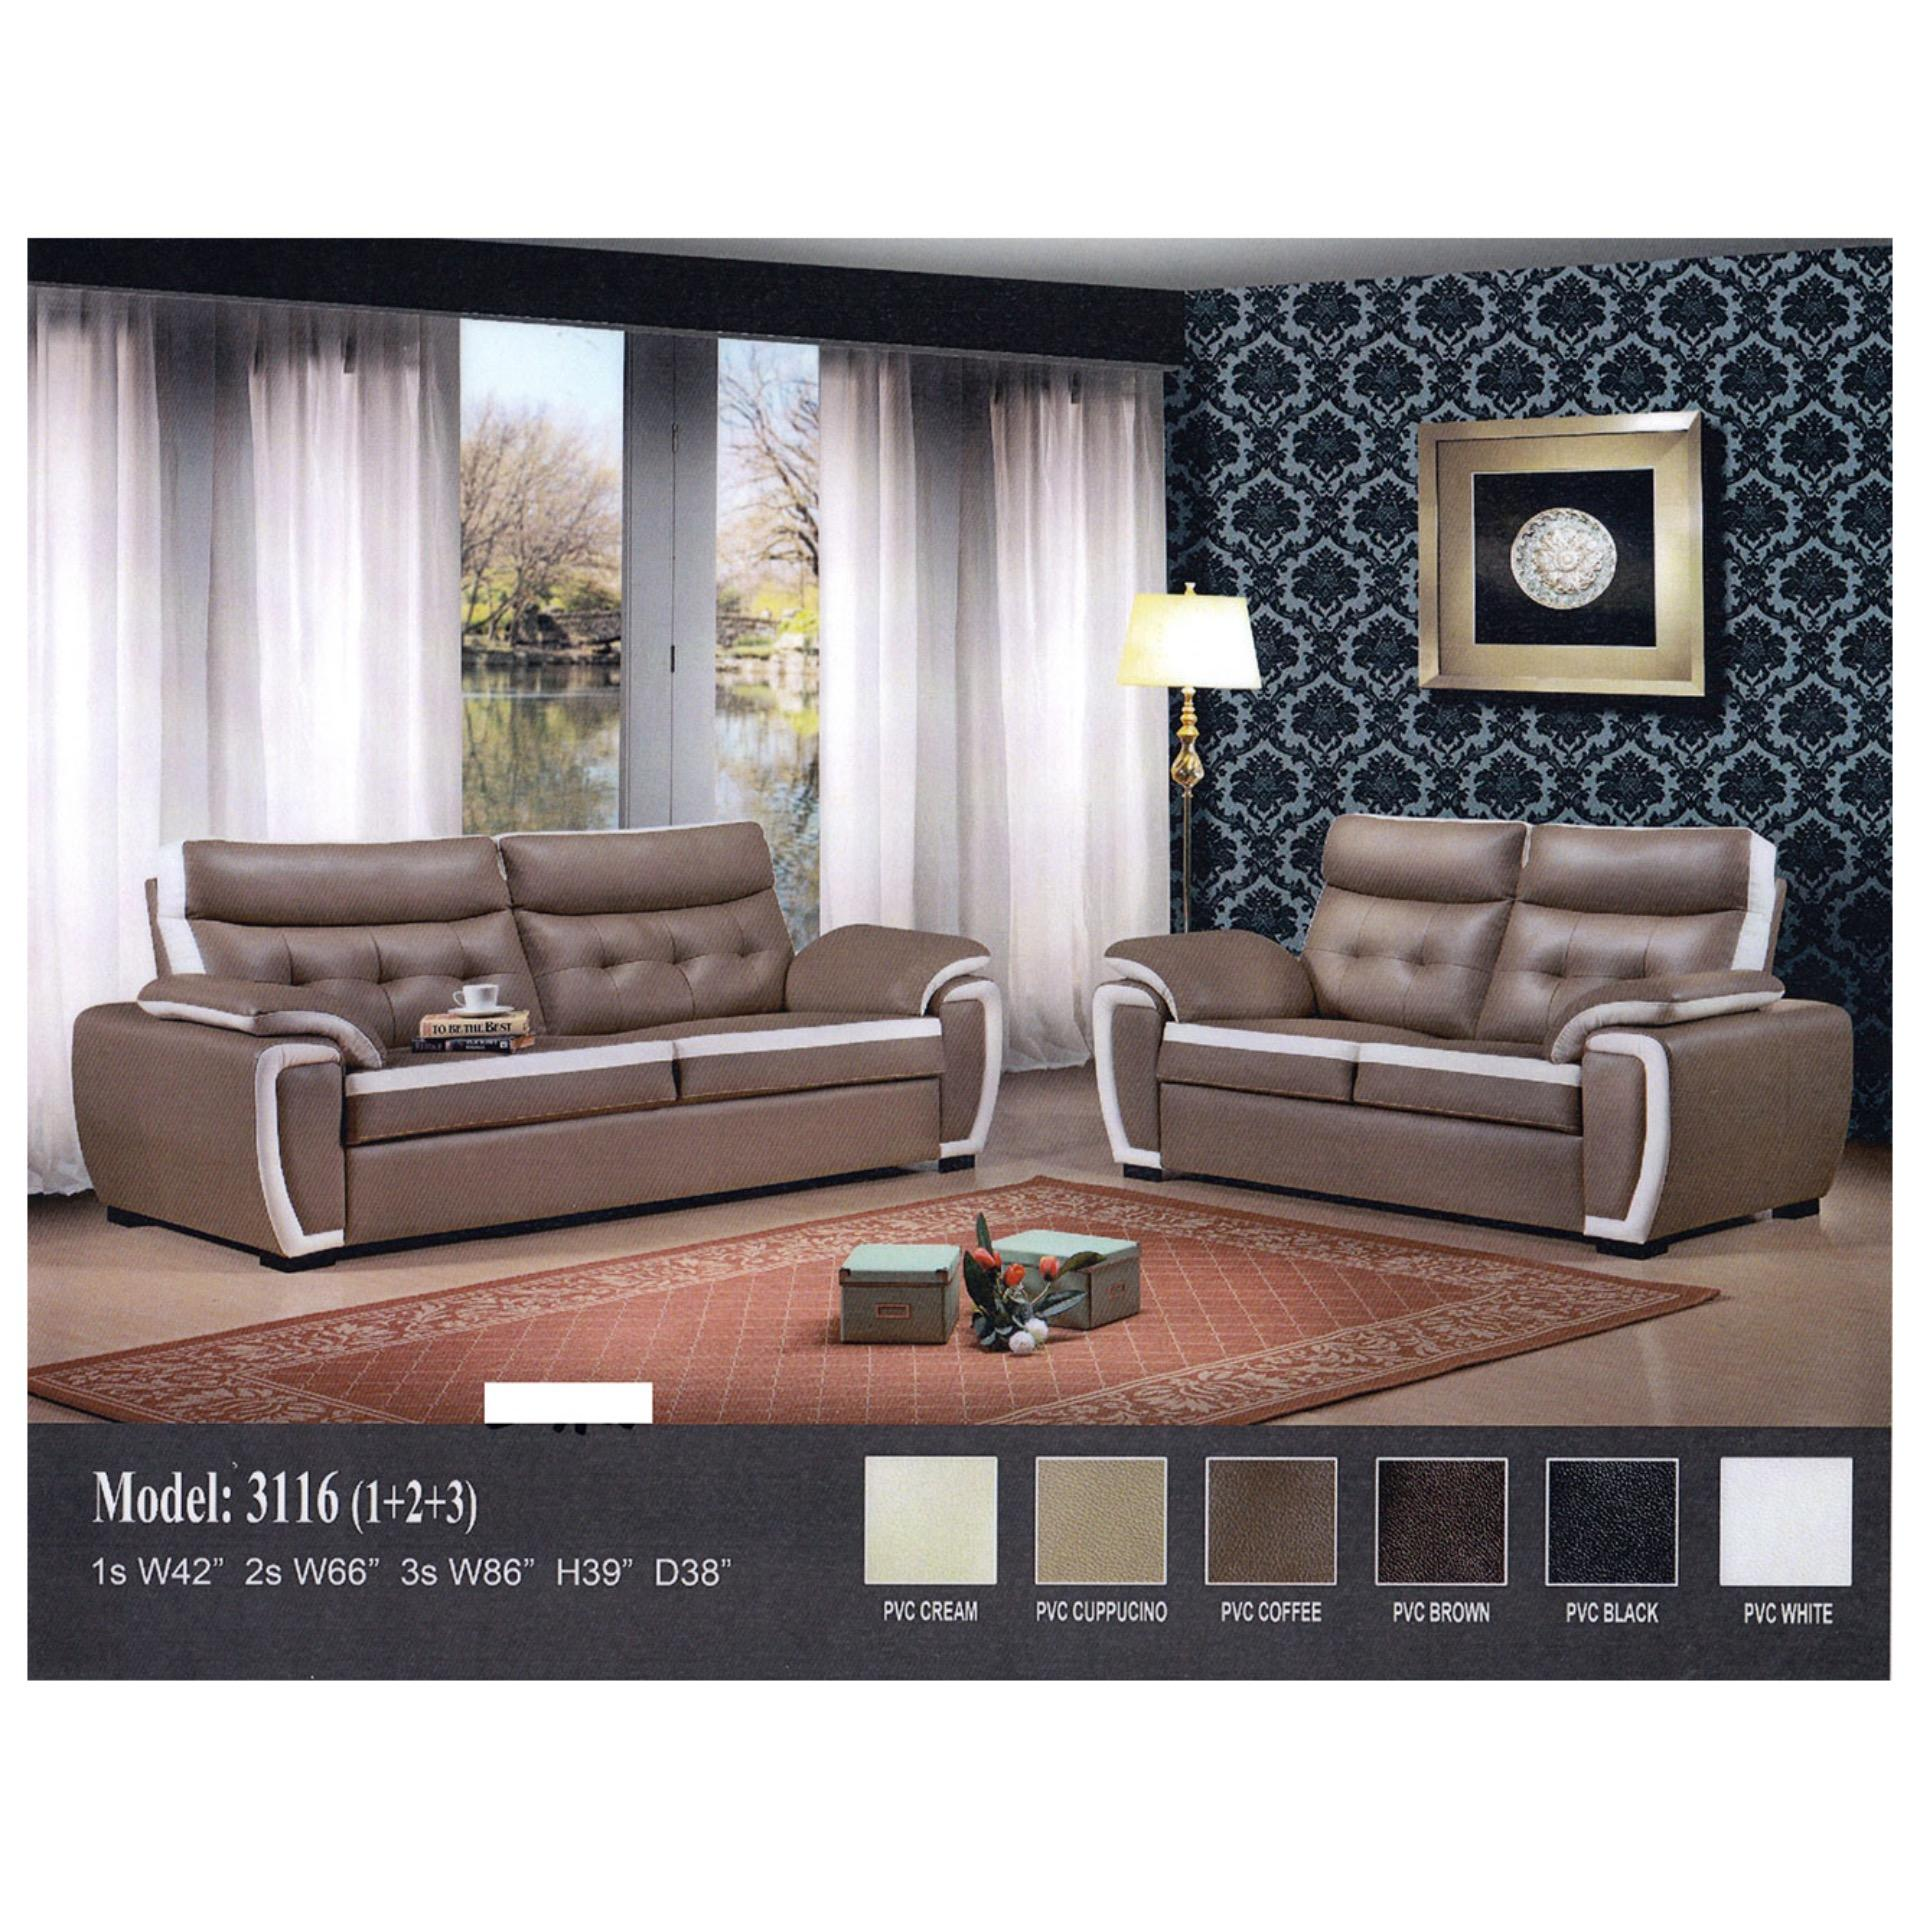 2 3 Leather Sofa Set Relax Chair Lo End 4 28 2021 12 00 Am